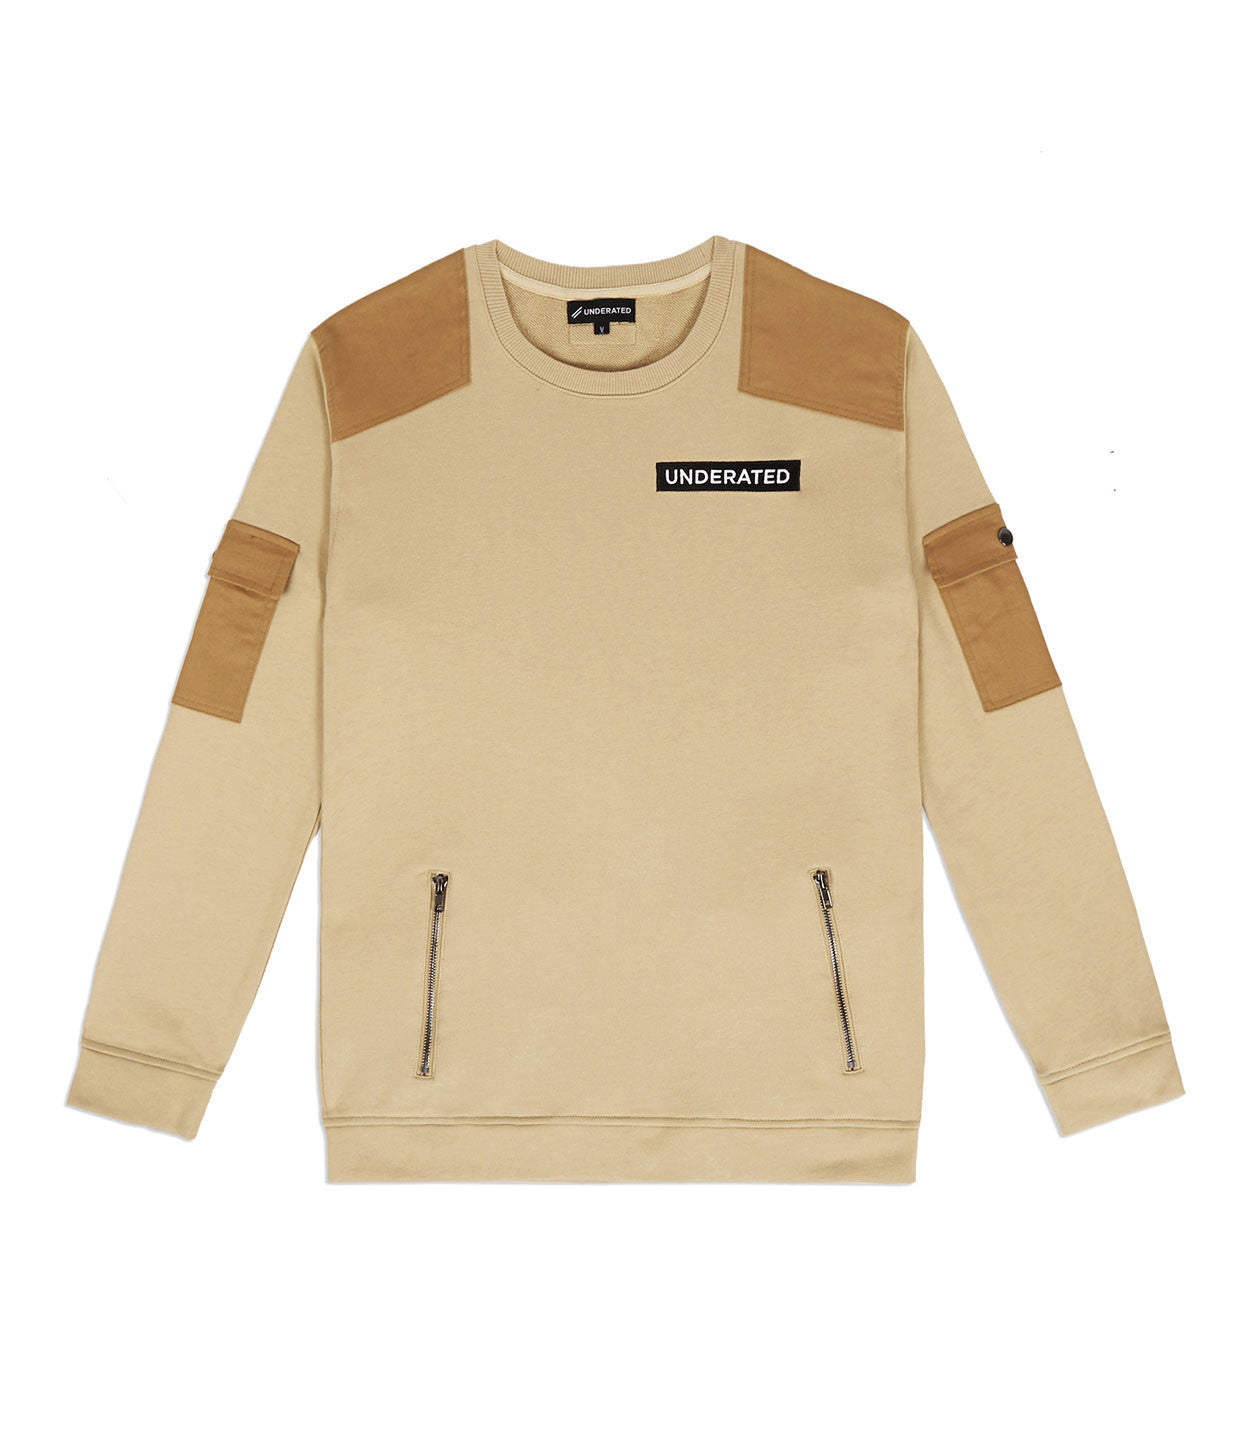 SW376 Utility Cargo Sweatshirt - Beige - underated london - underatedco - 1